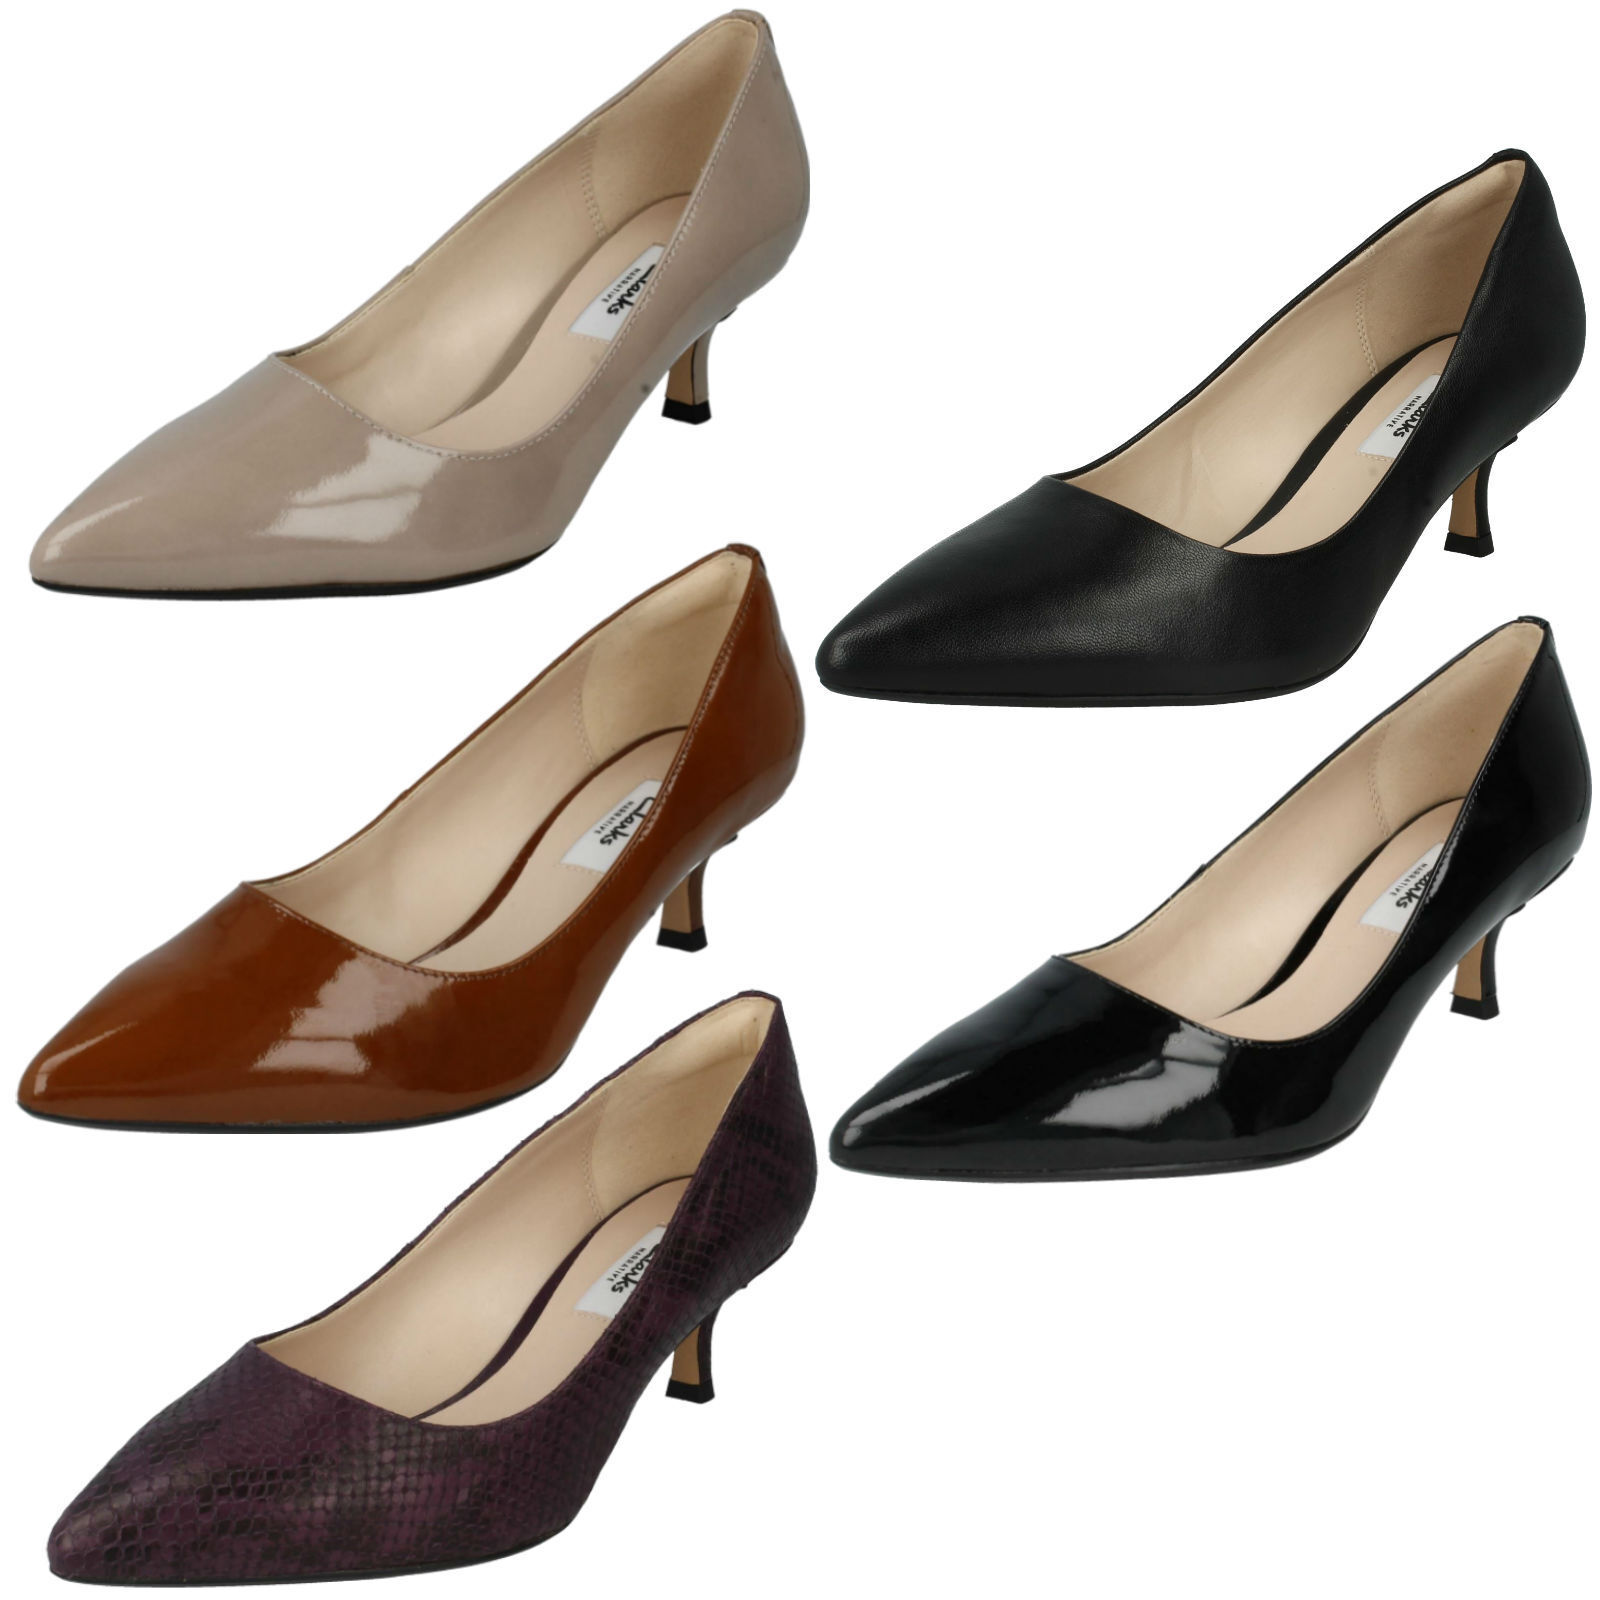 LADIES CLARKS LEATHER POINTED POINTED POINTED TOE KITTEN HEEL SLIP ON COURT SHOES AQUIFER SODA 96f2d9